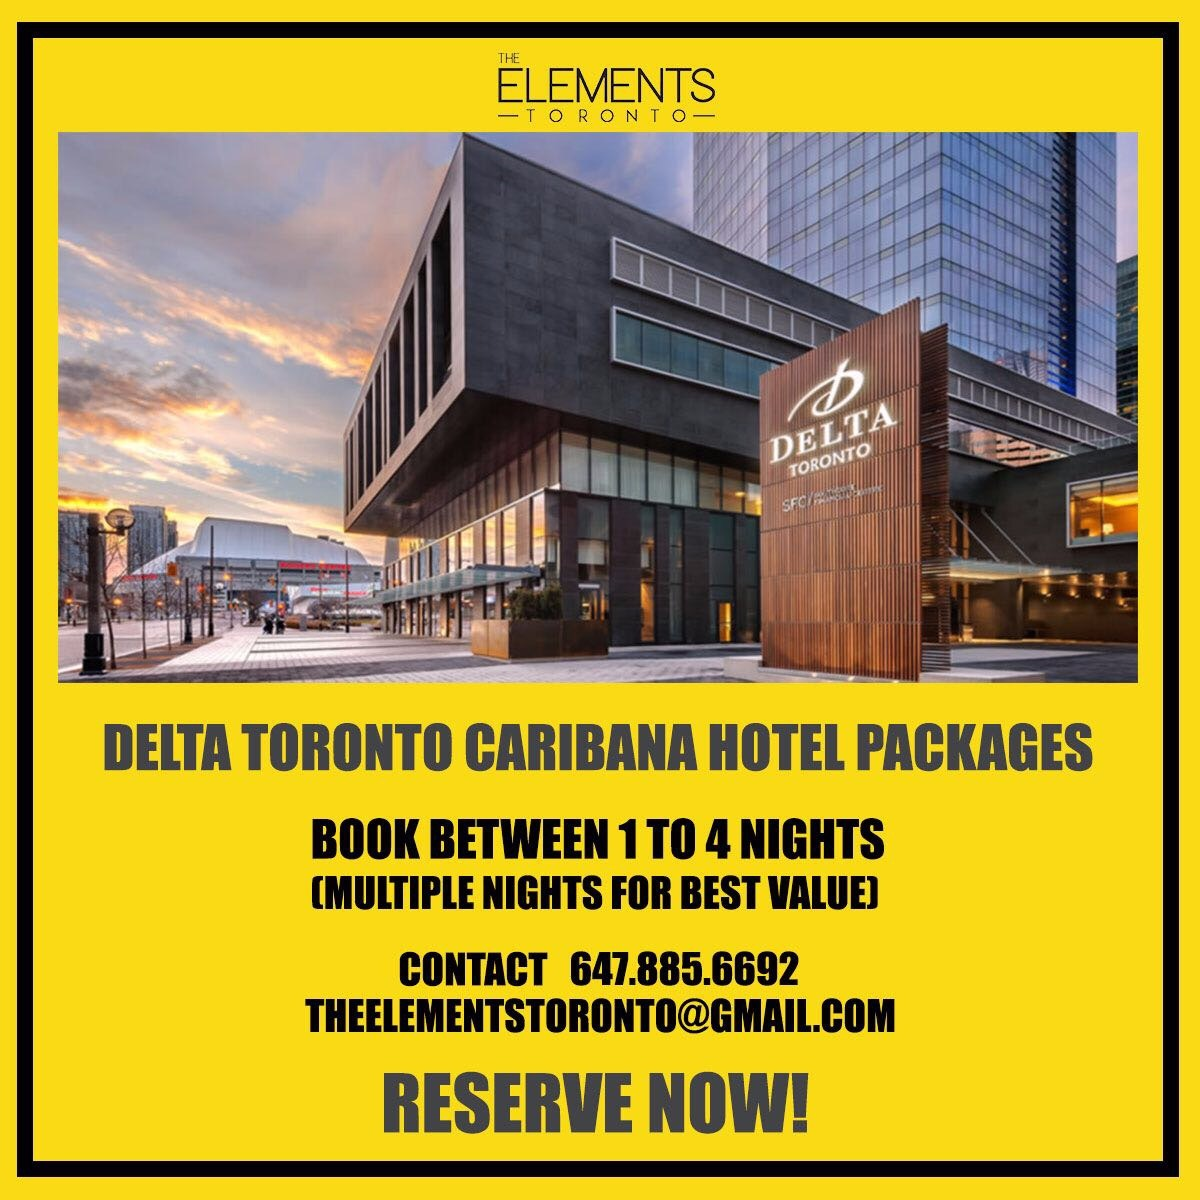 DELTA TORONTO CARIBANA HOTEL PACKAGES